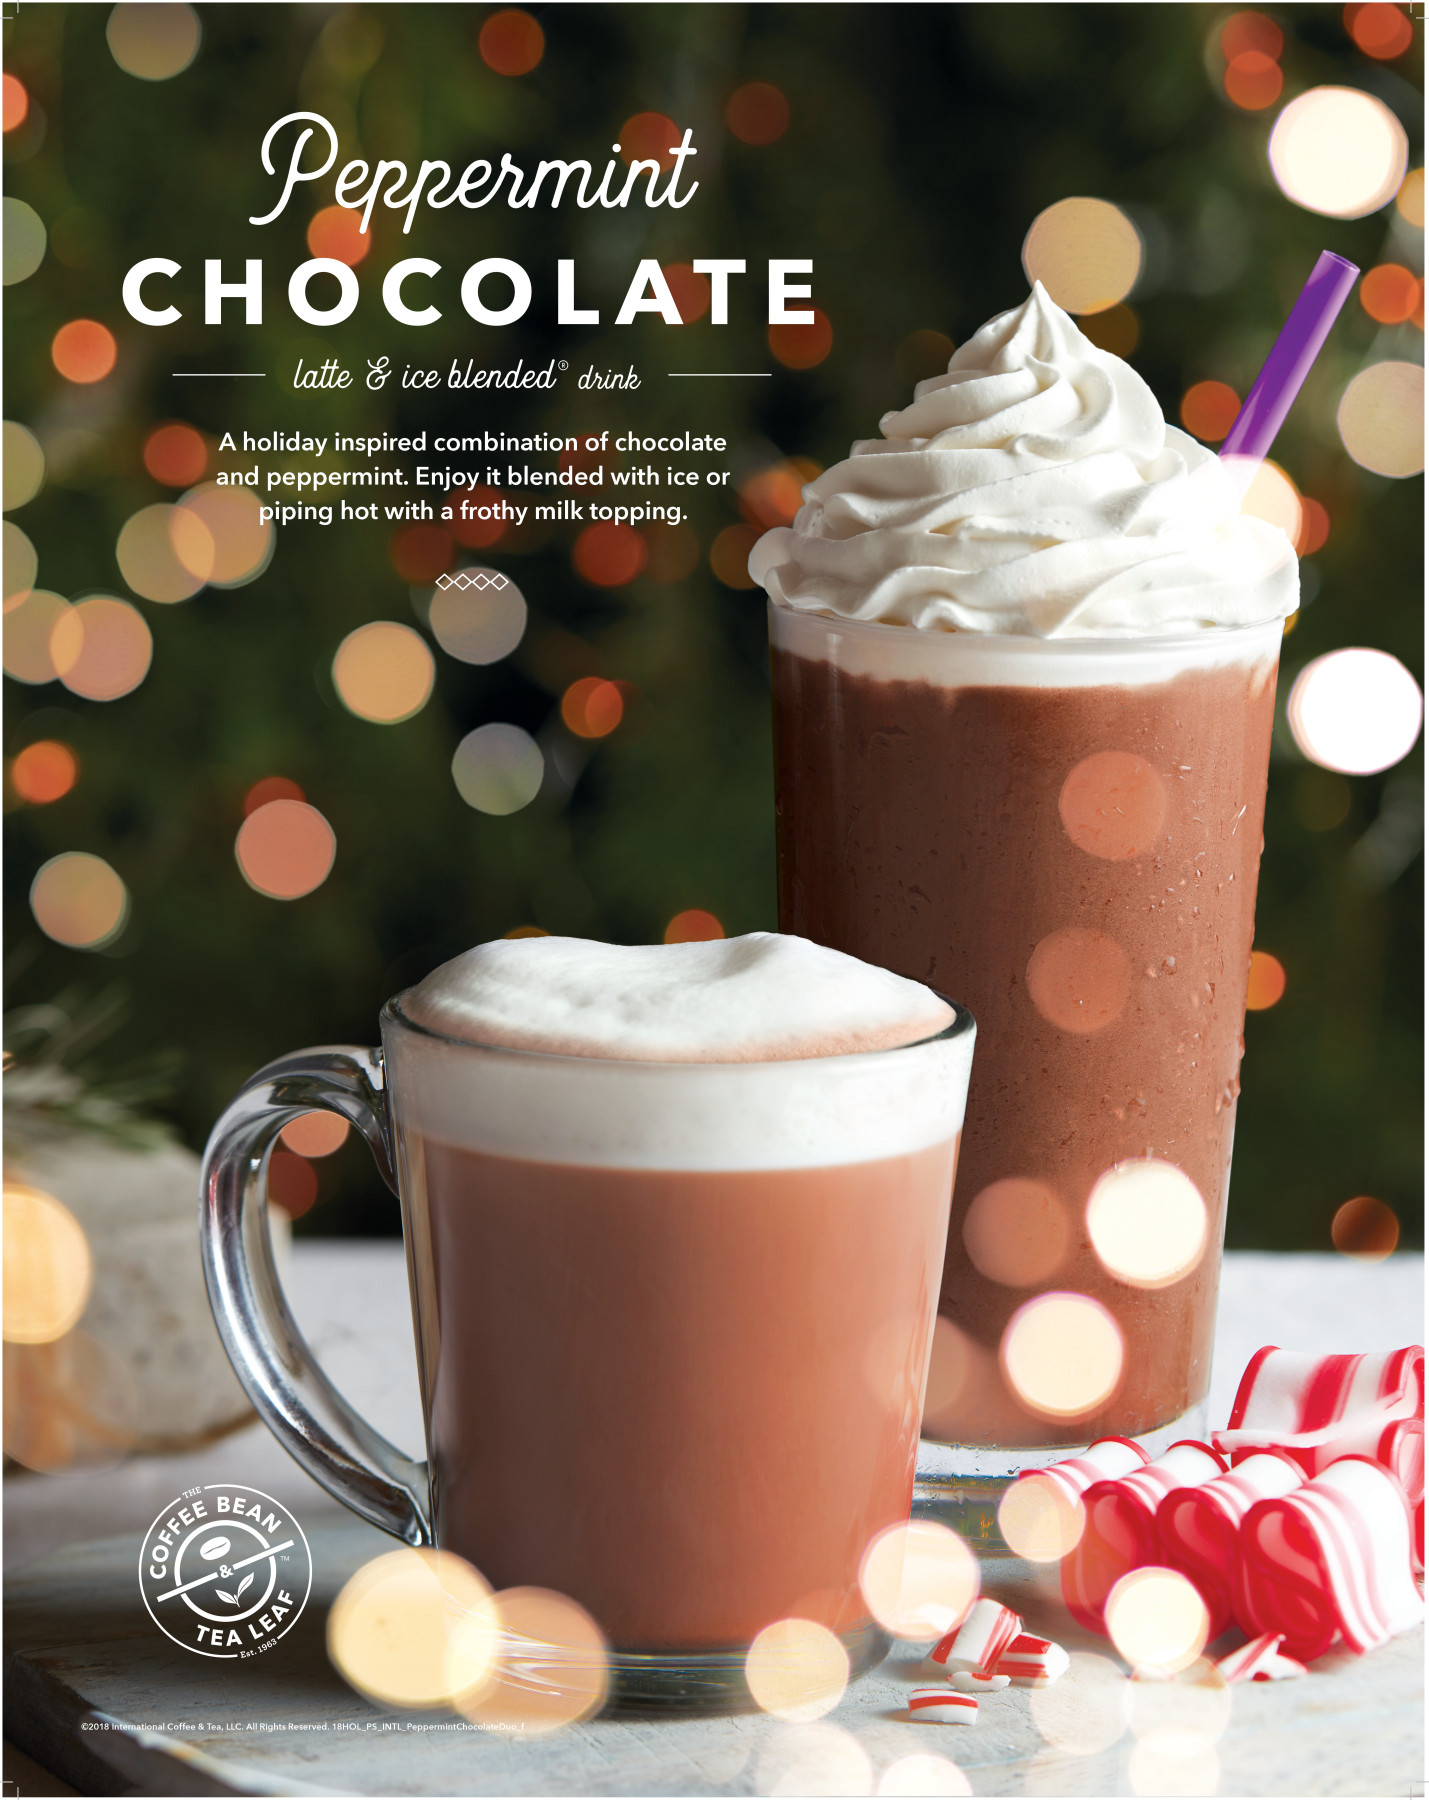 Matt Armendariz For Coffee Bean & Tea Leaf 2018 Holiday05.jpg